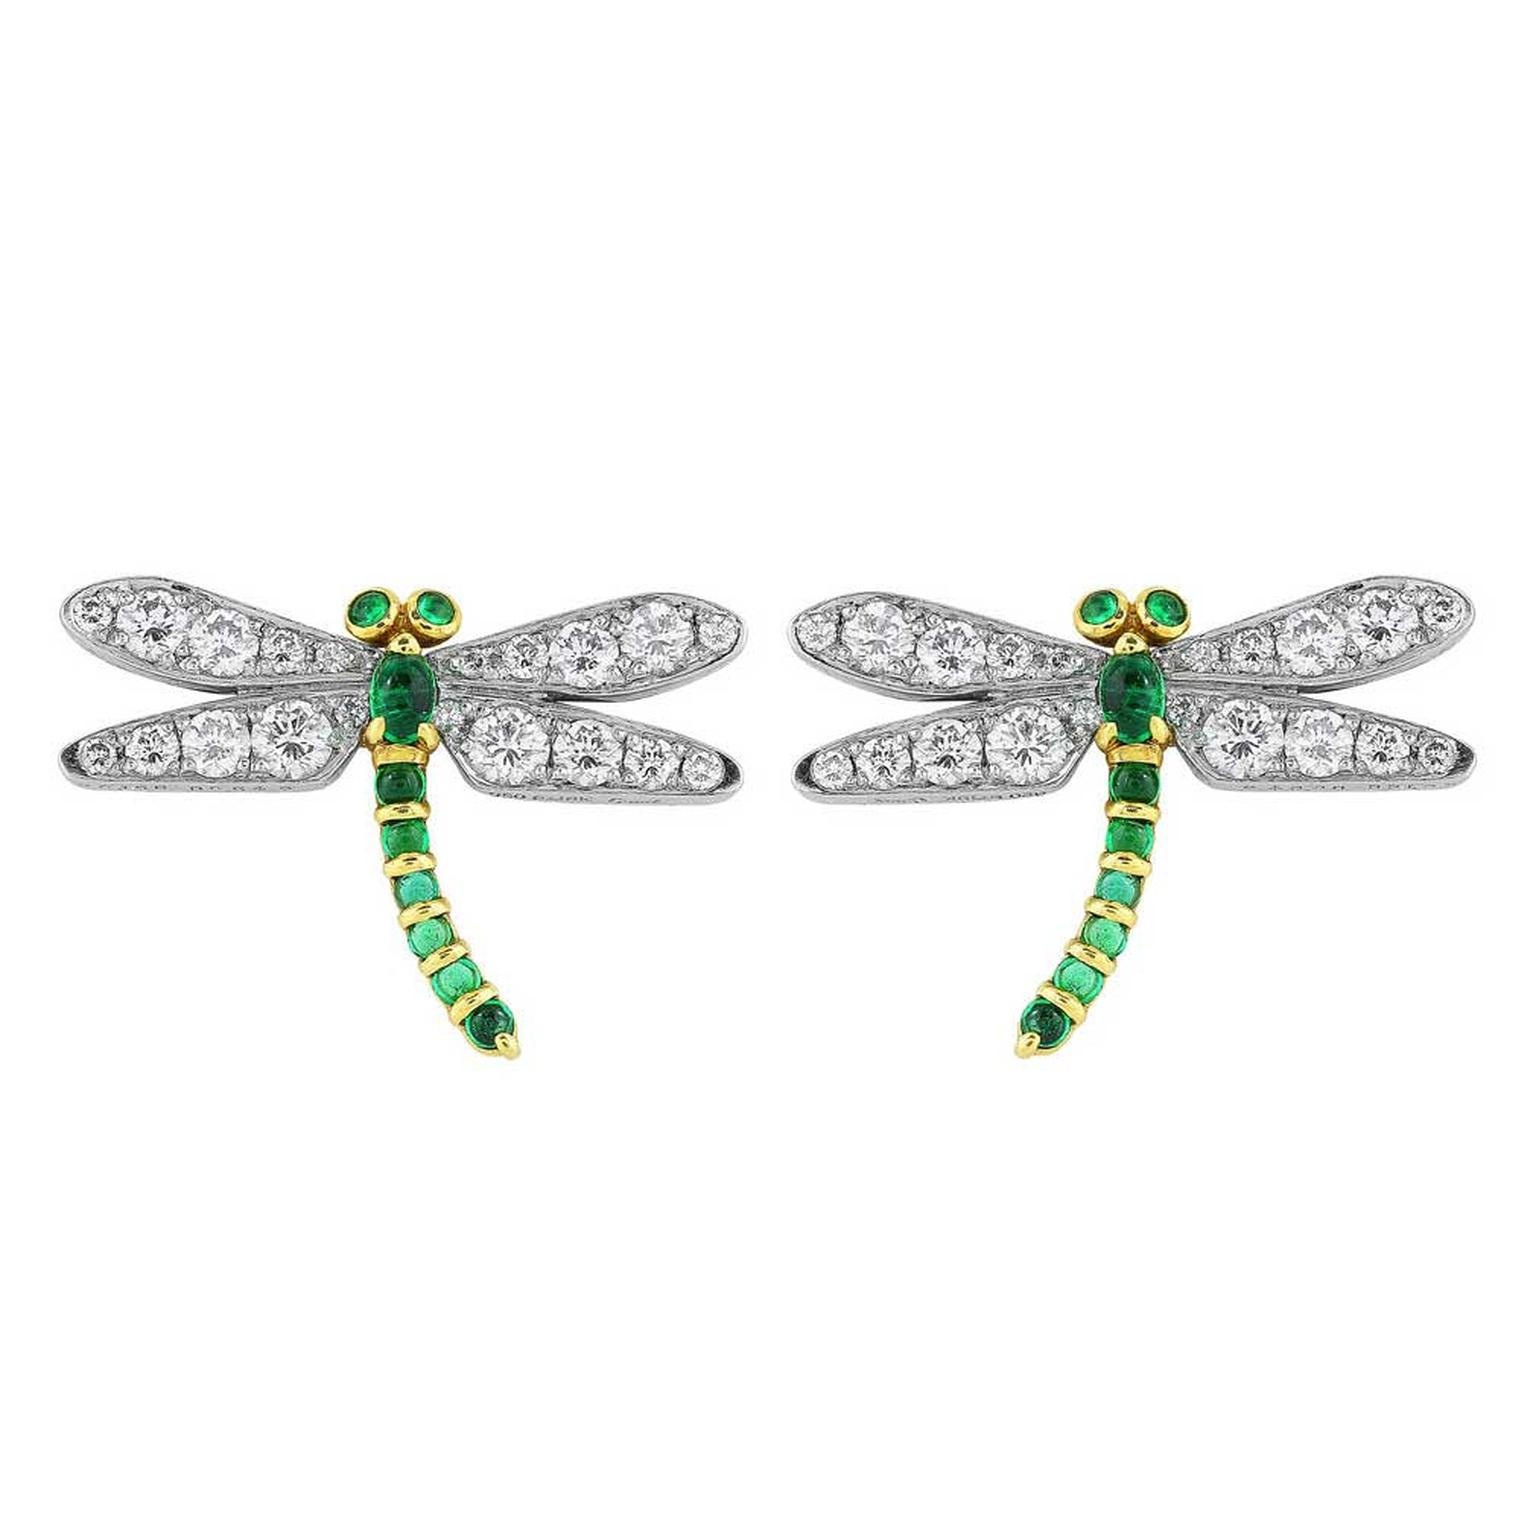 Shreve, Crump & Low emerald and diamond dragonfly earrings